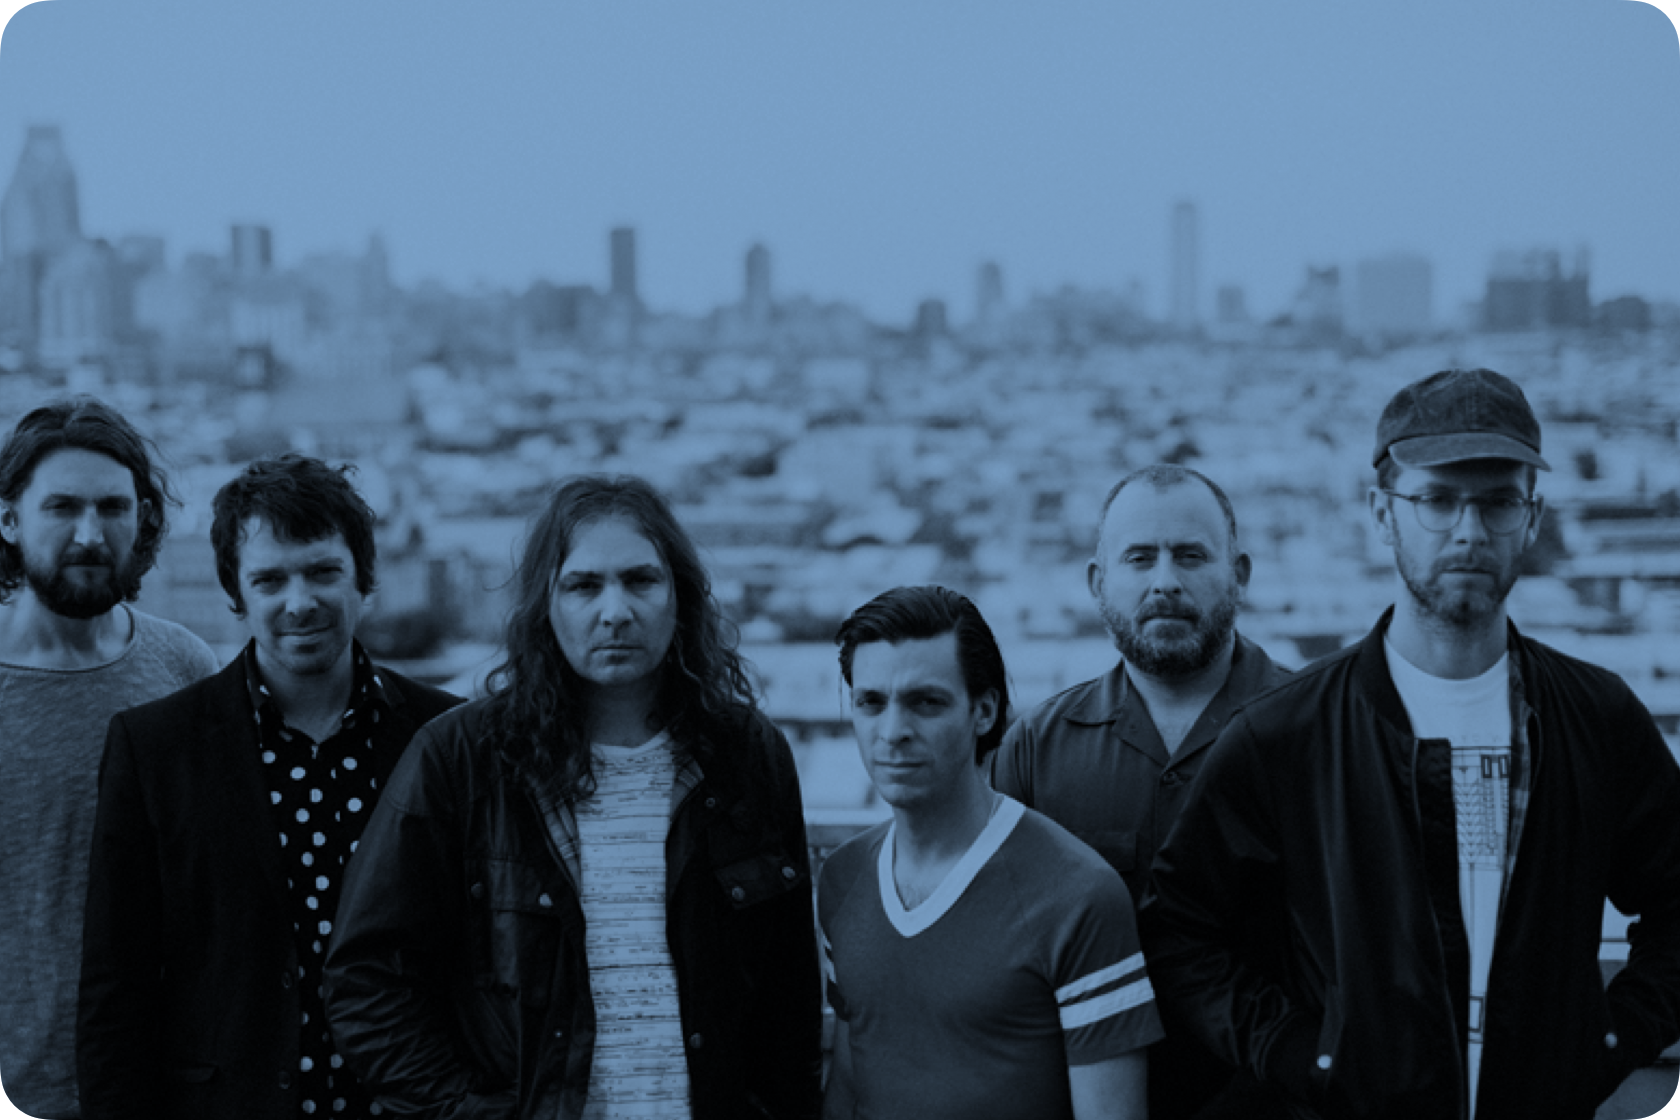 Members of the War on Drugs with a city in the background